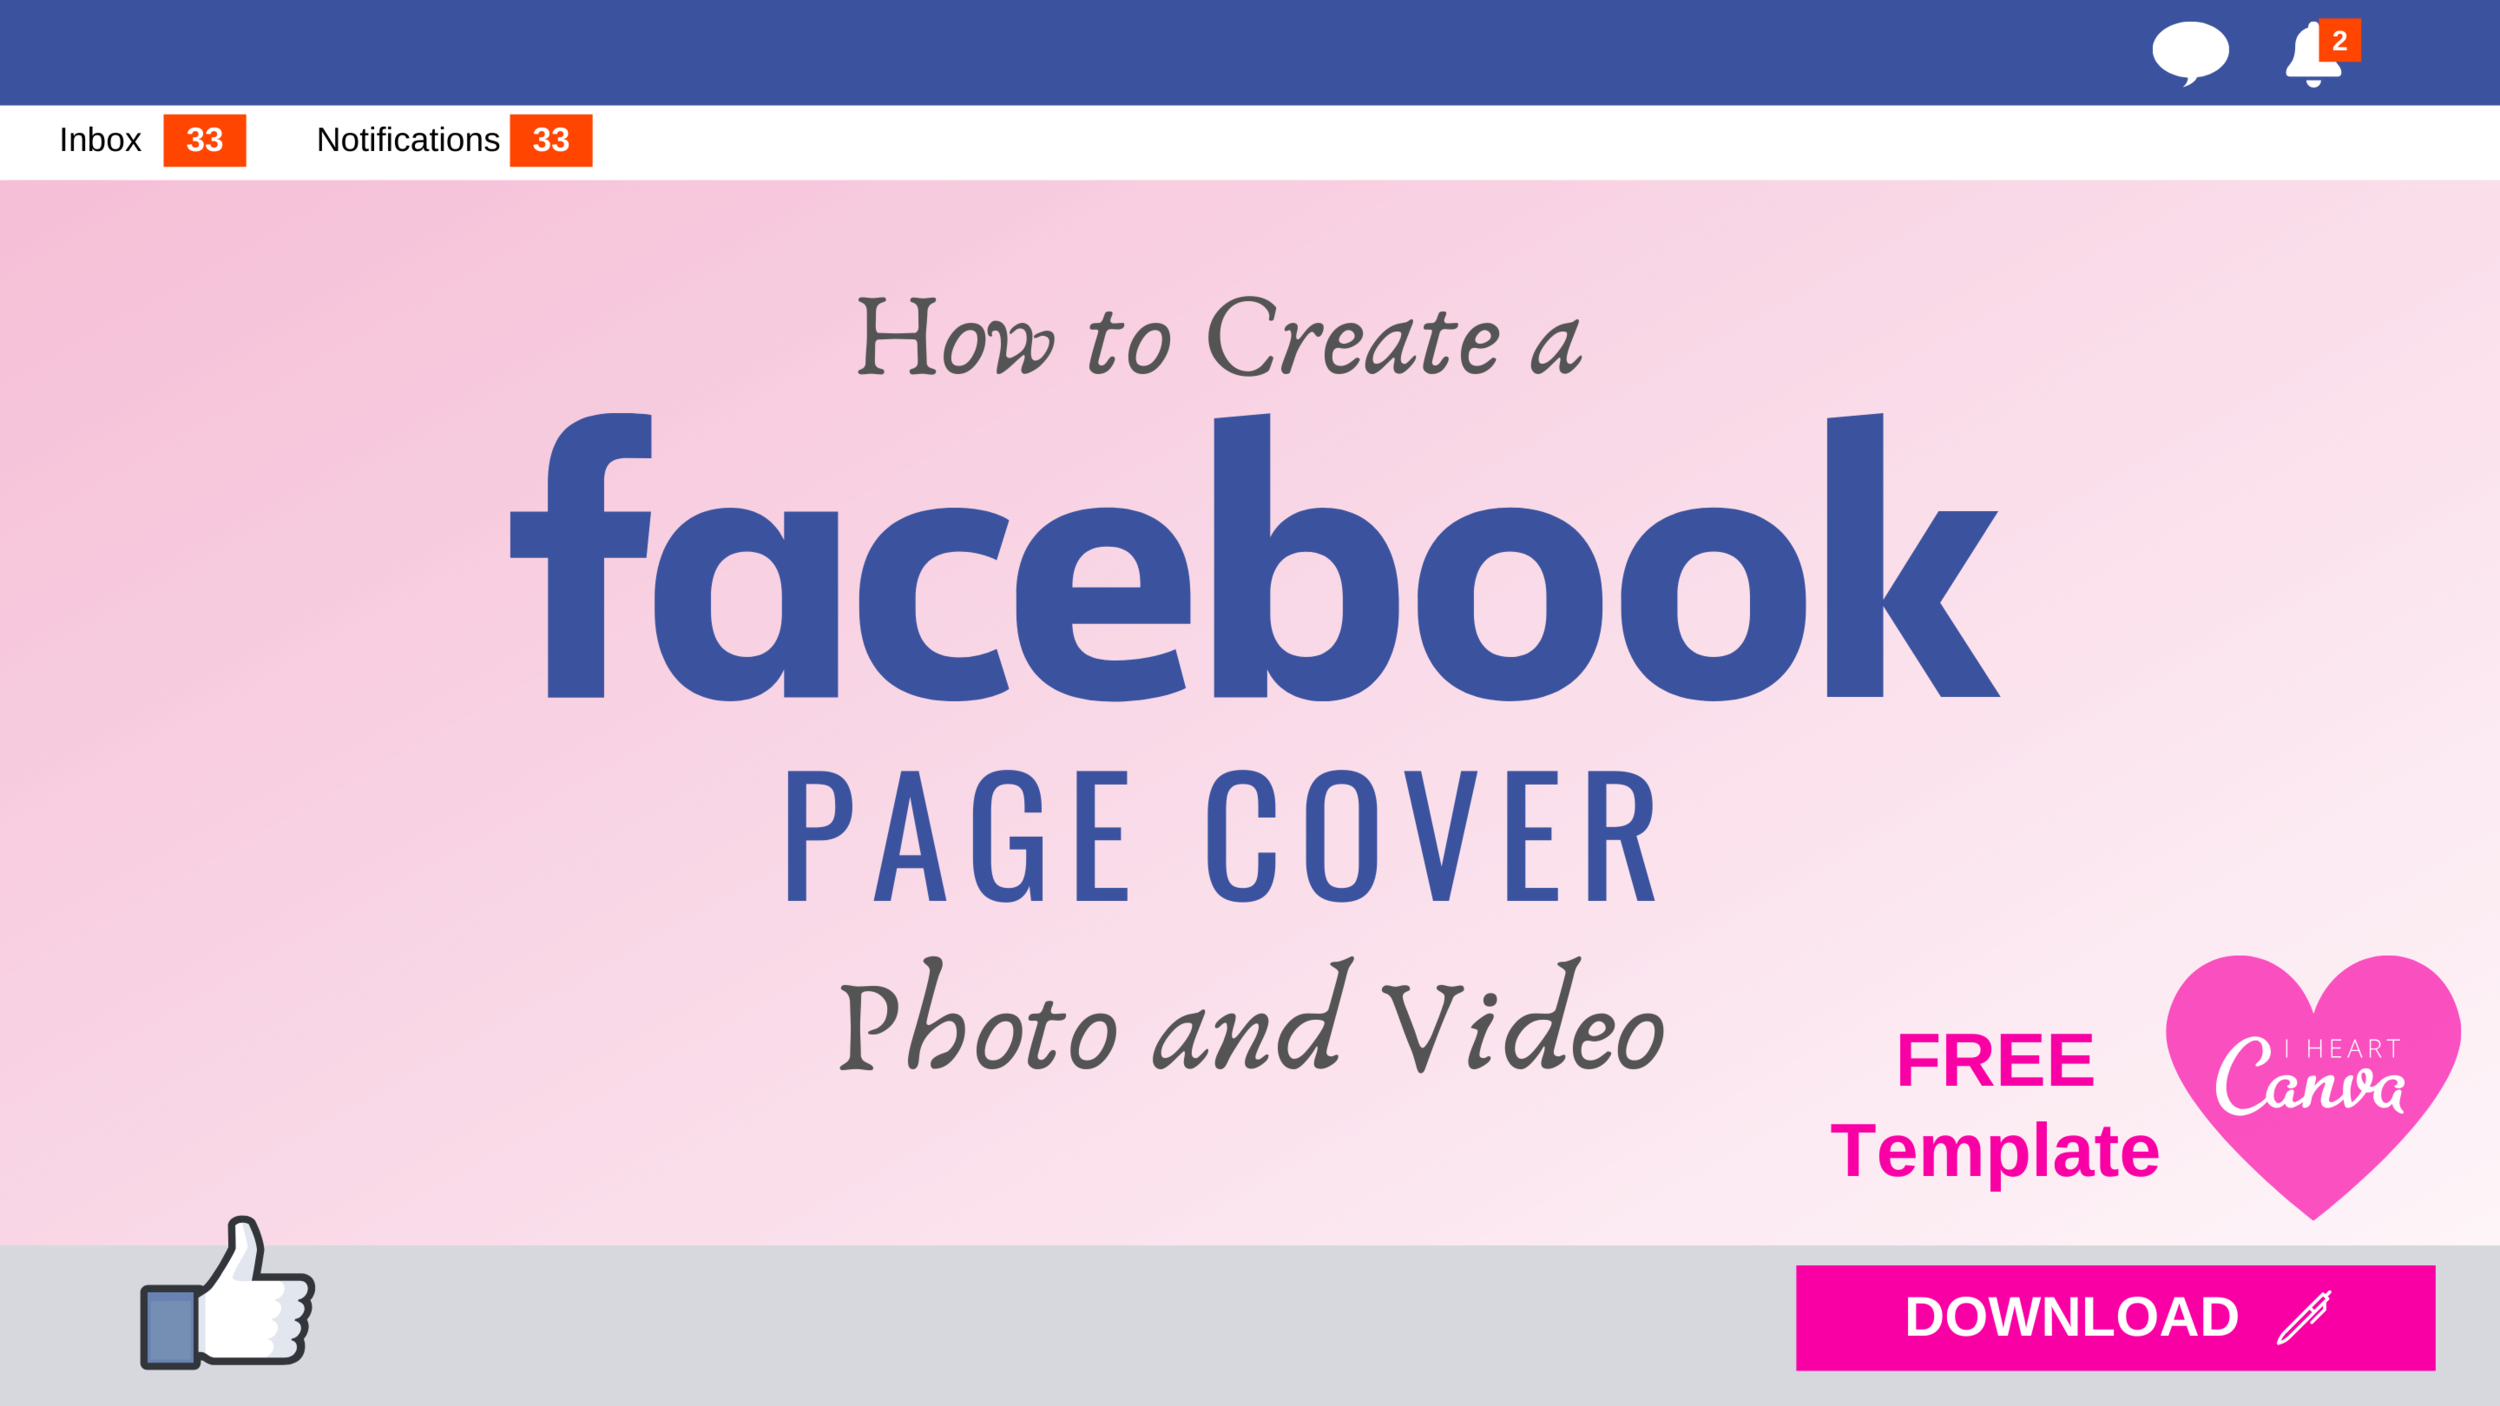 How To Design A Facebook Business Page Cover Photo And Video 2020 Free Canva Template Virtuoso Assistant